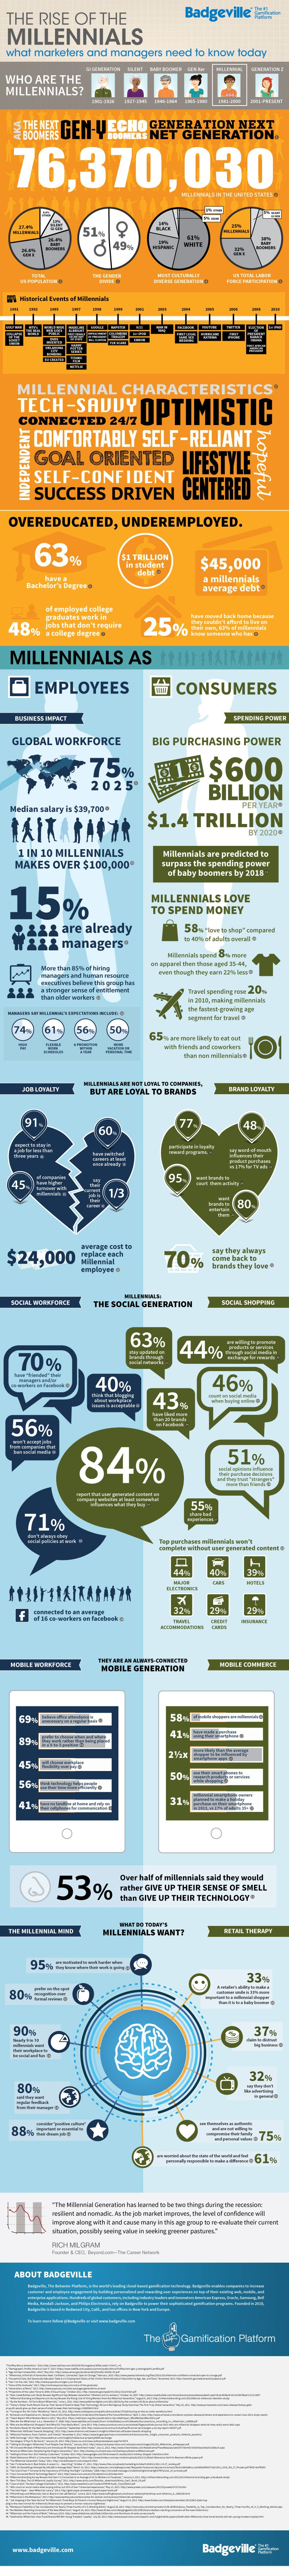 what you need to know to hire manage and market to millennials cio click to enlarge